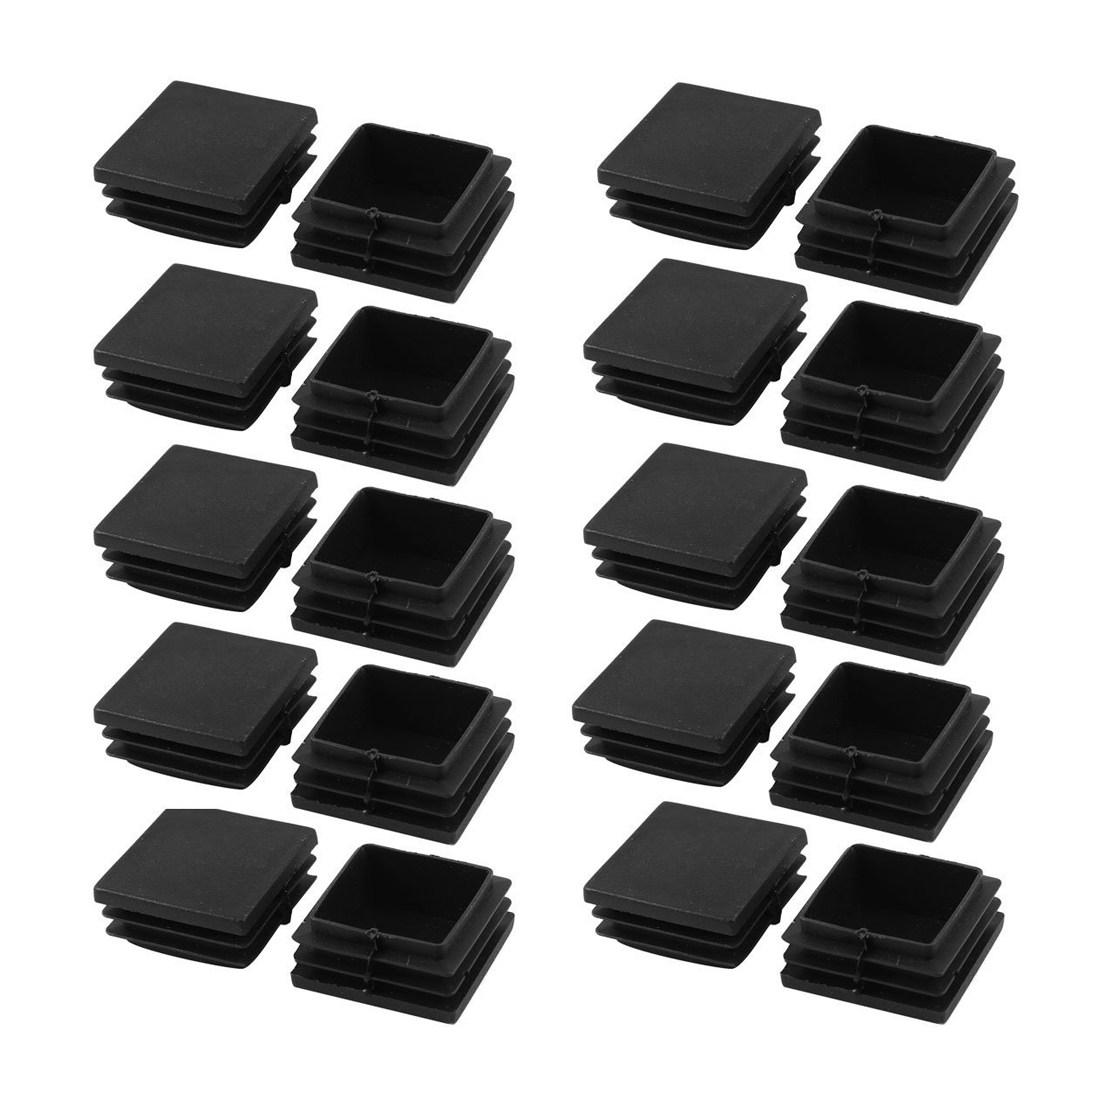 Promotion! 20 Pieces Plastic Square Tube Coupling Cap Plug Cap 40 Mm X 40 Mm Black